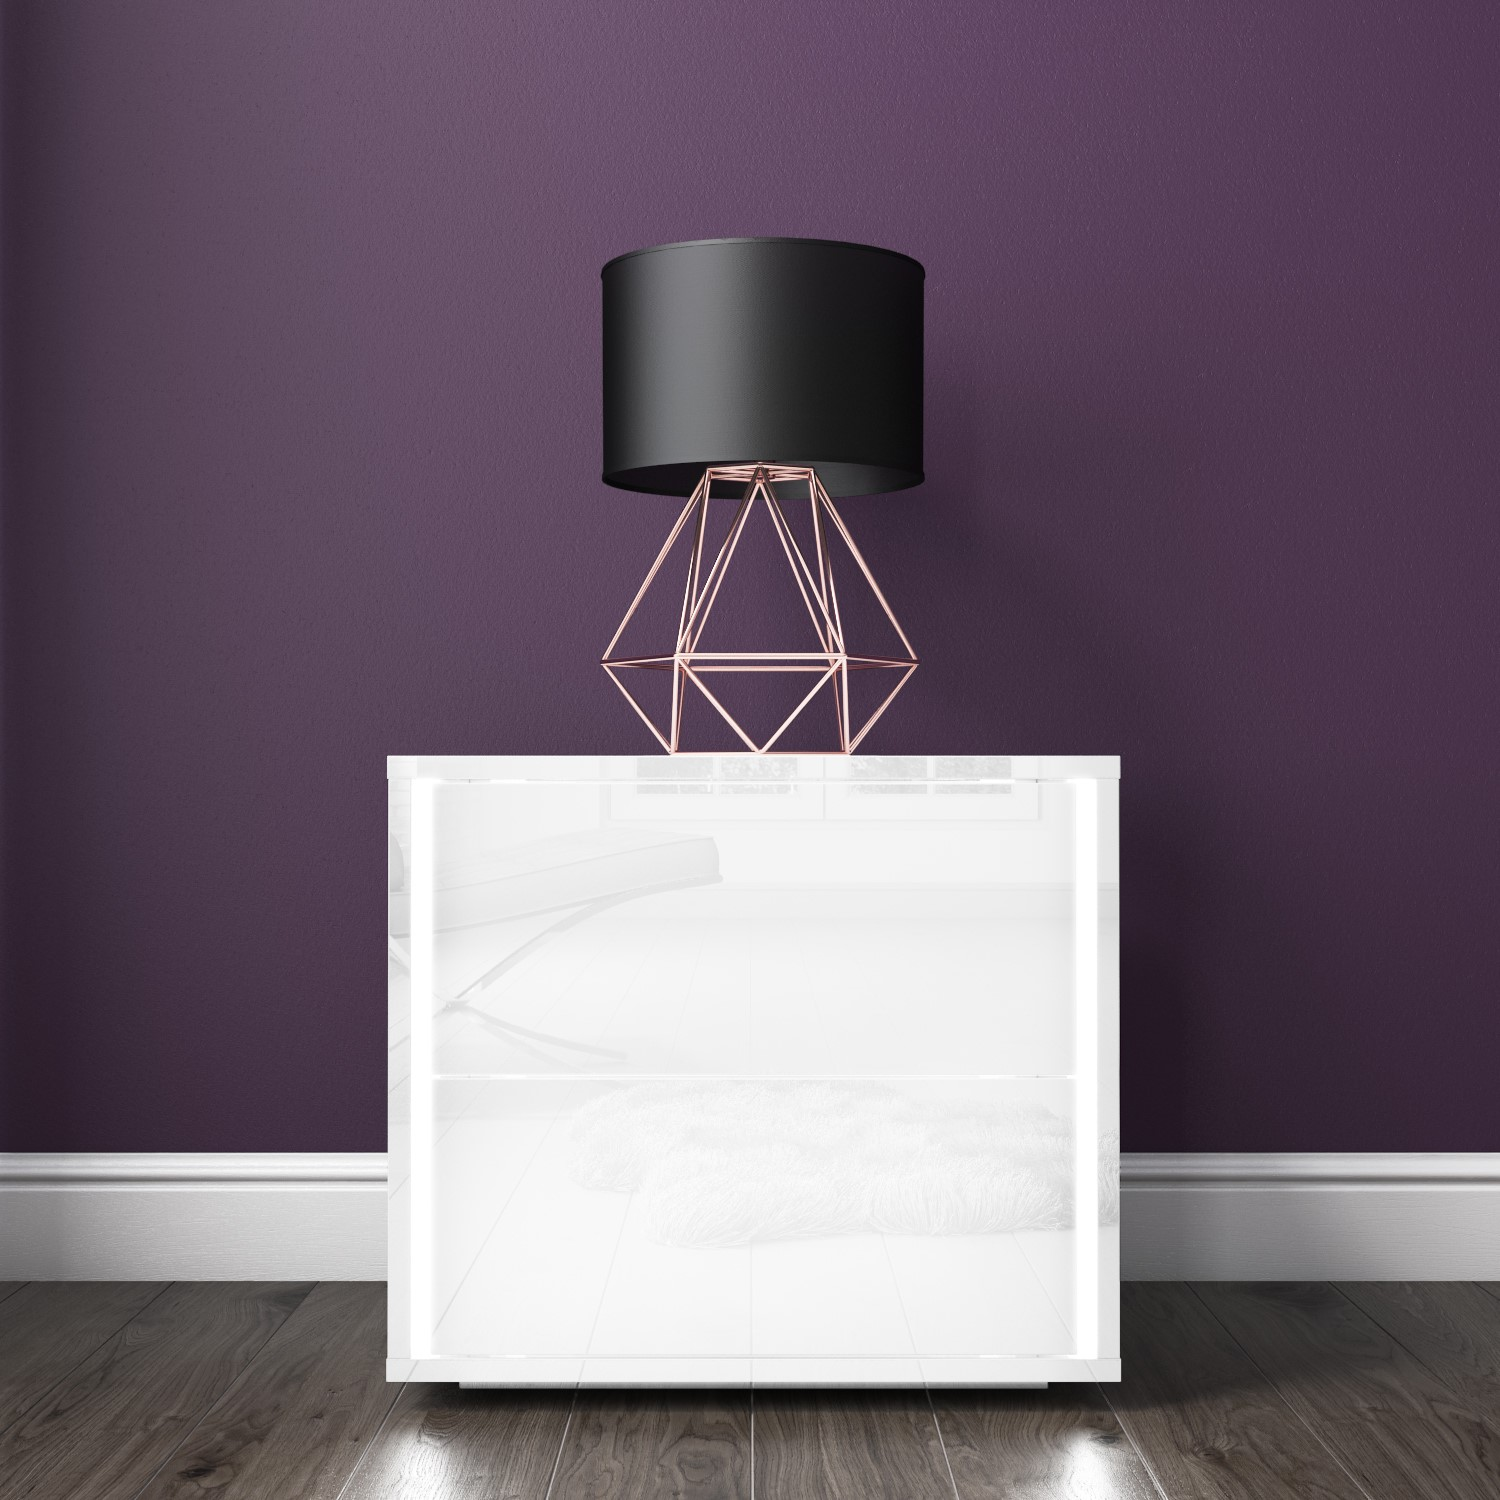 pretty nice 1c28a f4a78 Details about White High Gloss Bedside Table LED Lights 2 Drawer Push to  Open Nightstand